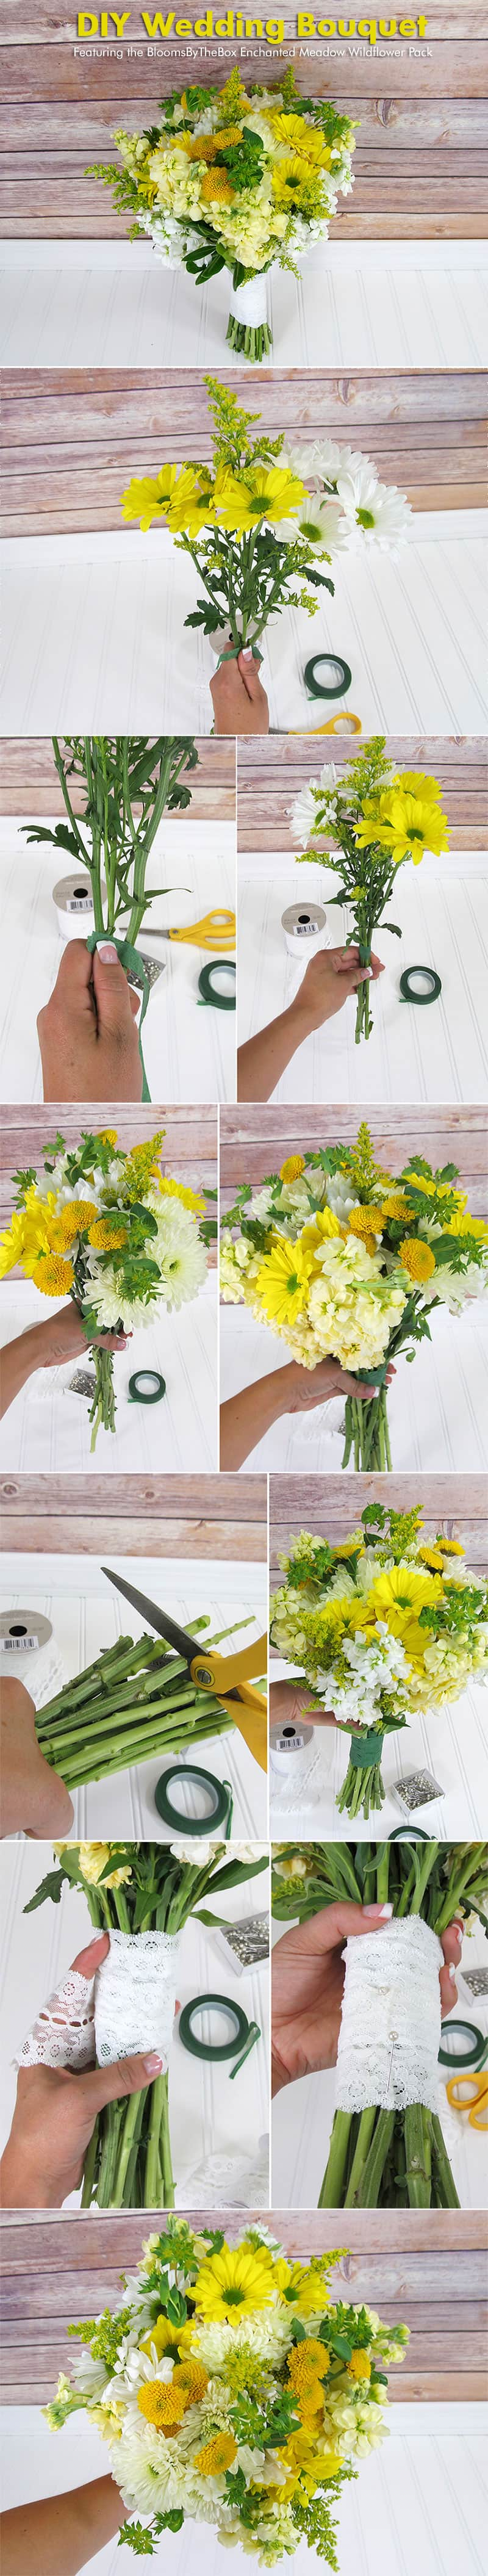 Make a Wildflower Bouquet